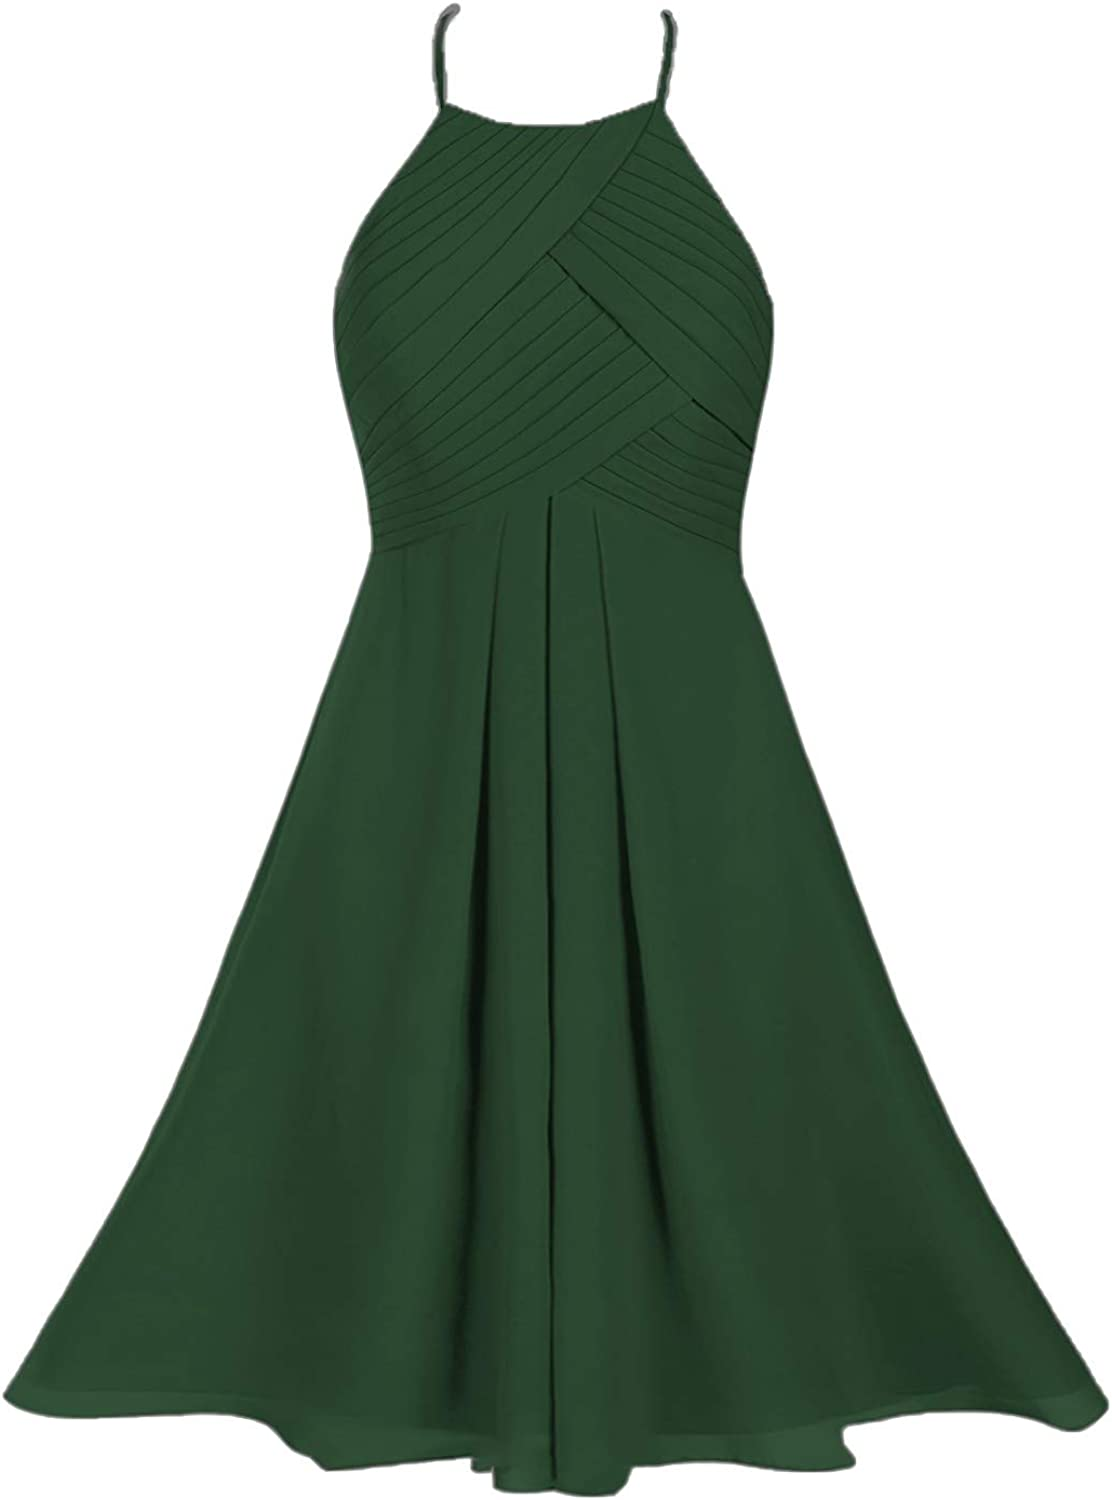 Women's Halter Knee Length Homecoming Dresses for Juniors Short Bridesmaid Dress Chiffon Prom Party Gown